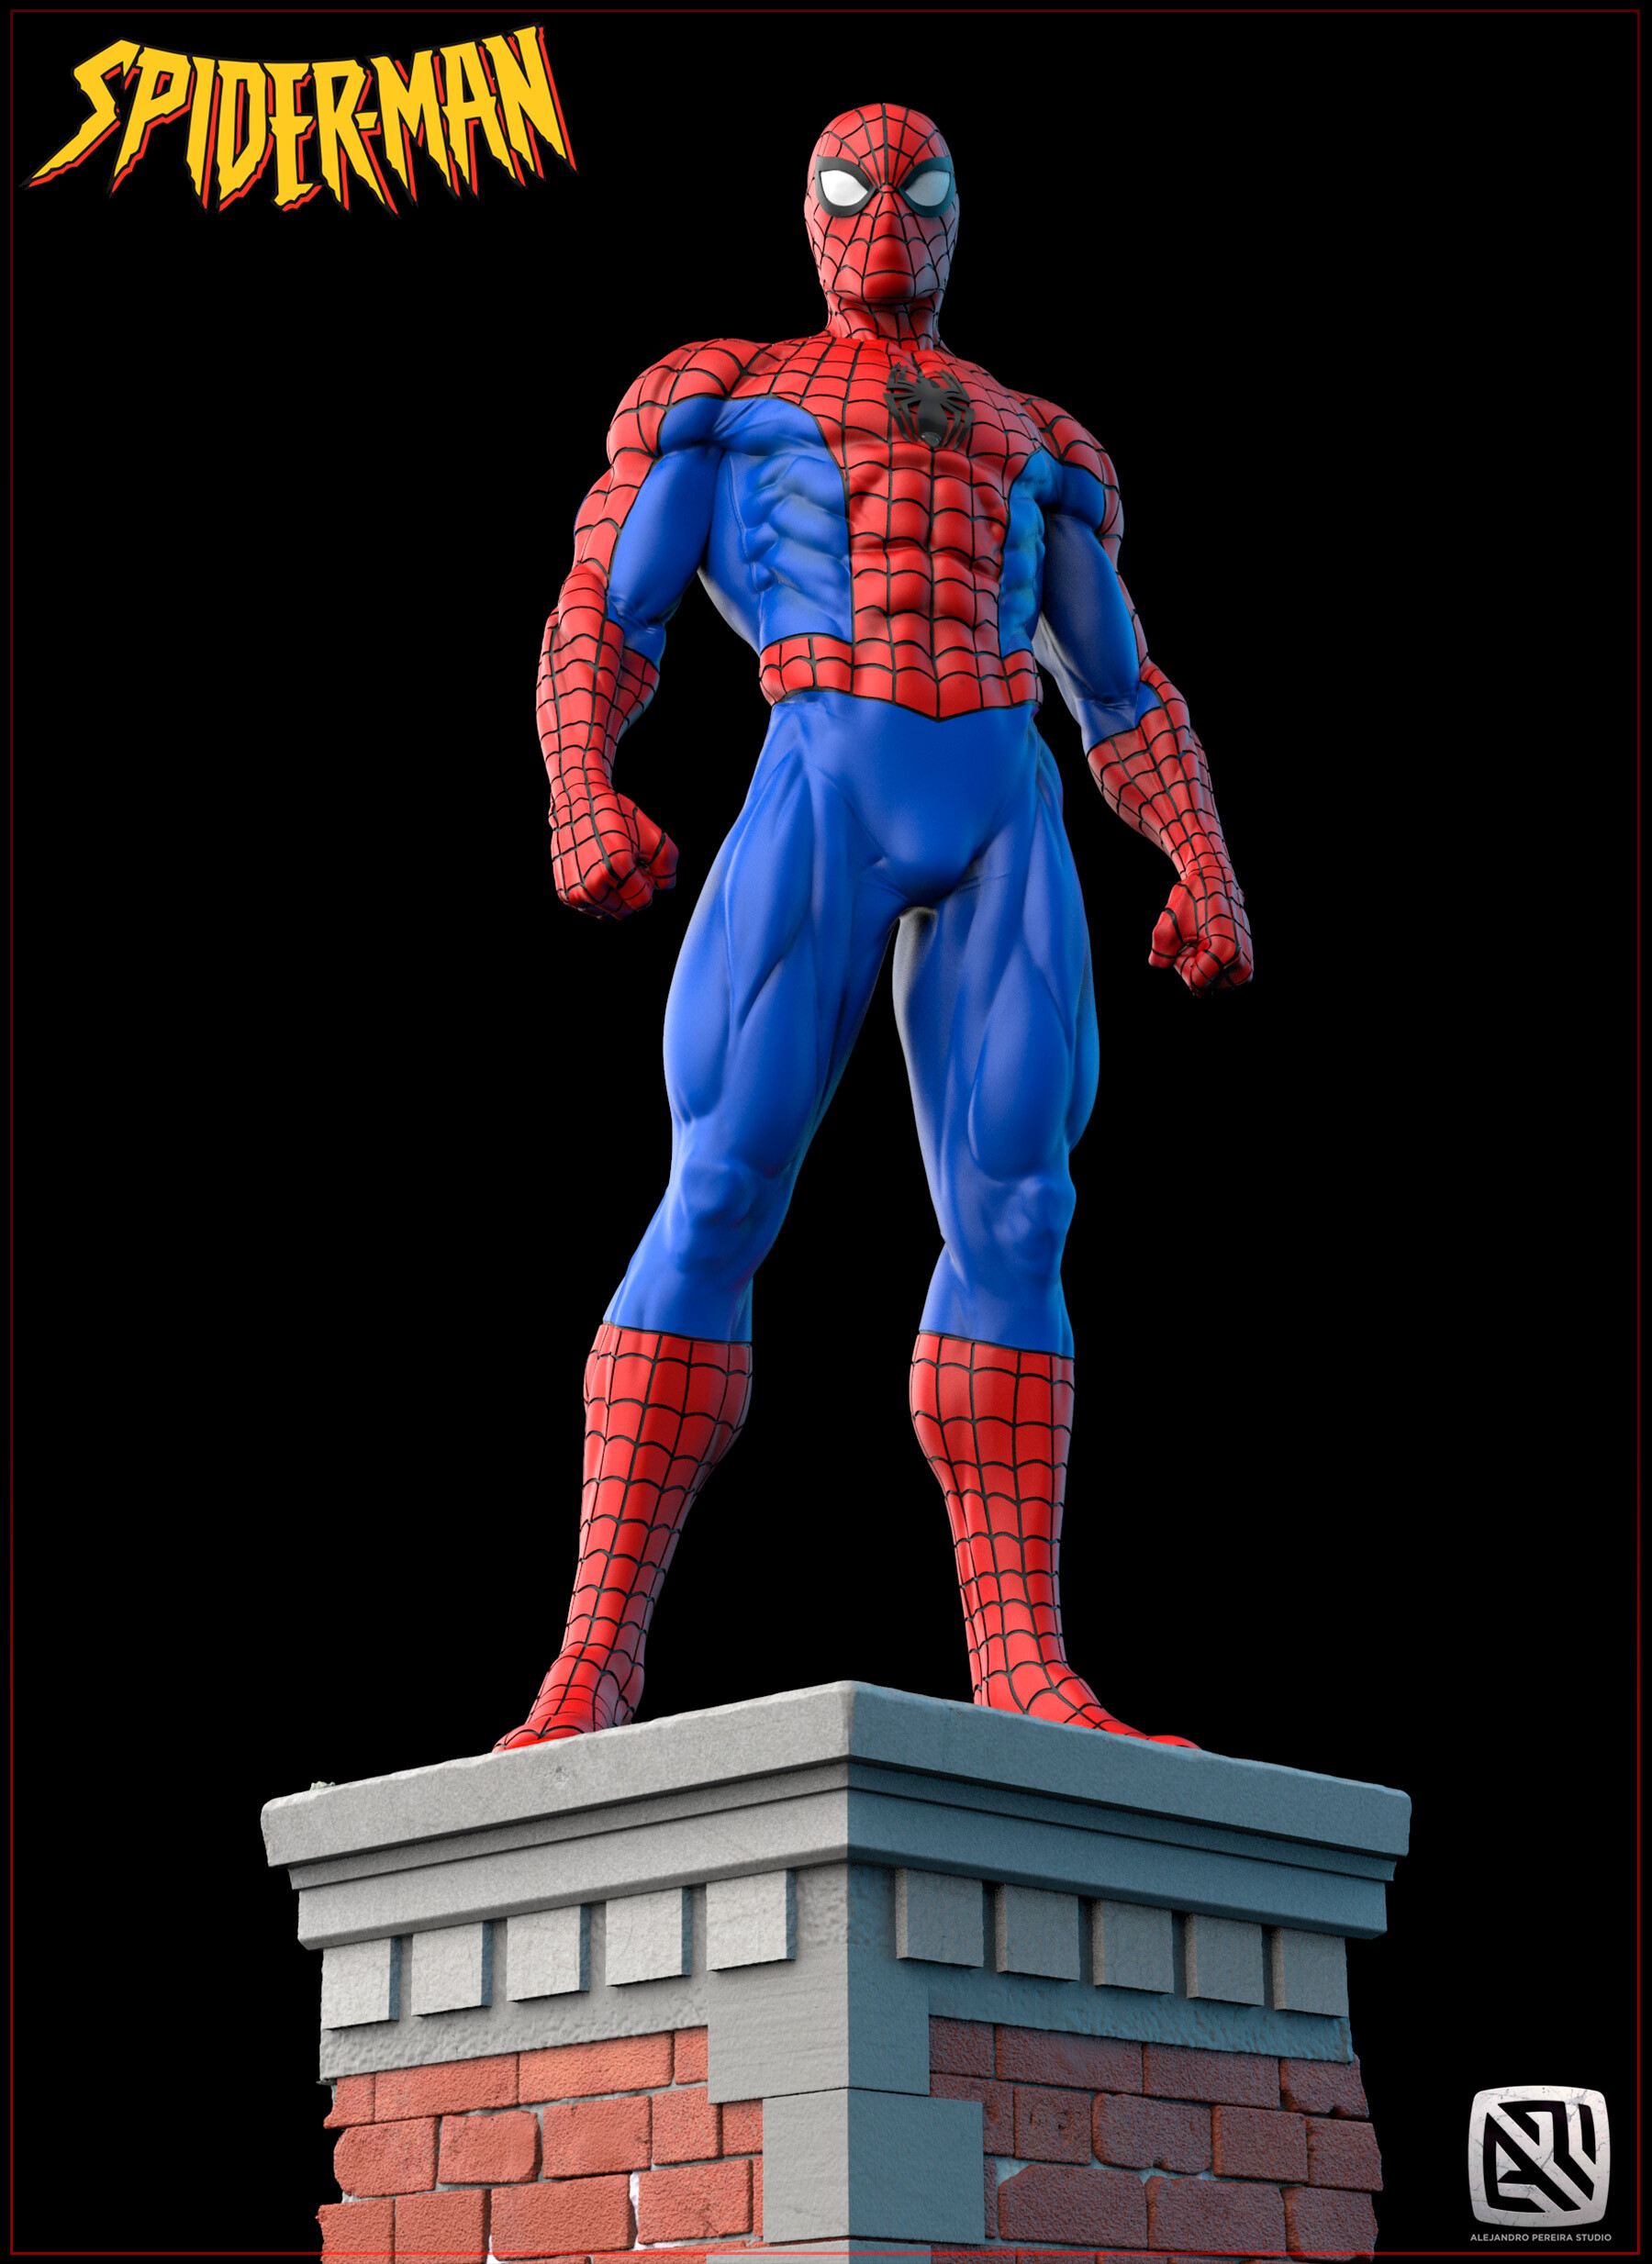 Alejandro pereira spidey render color 05